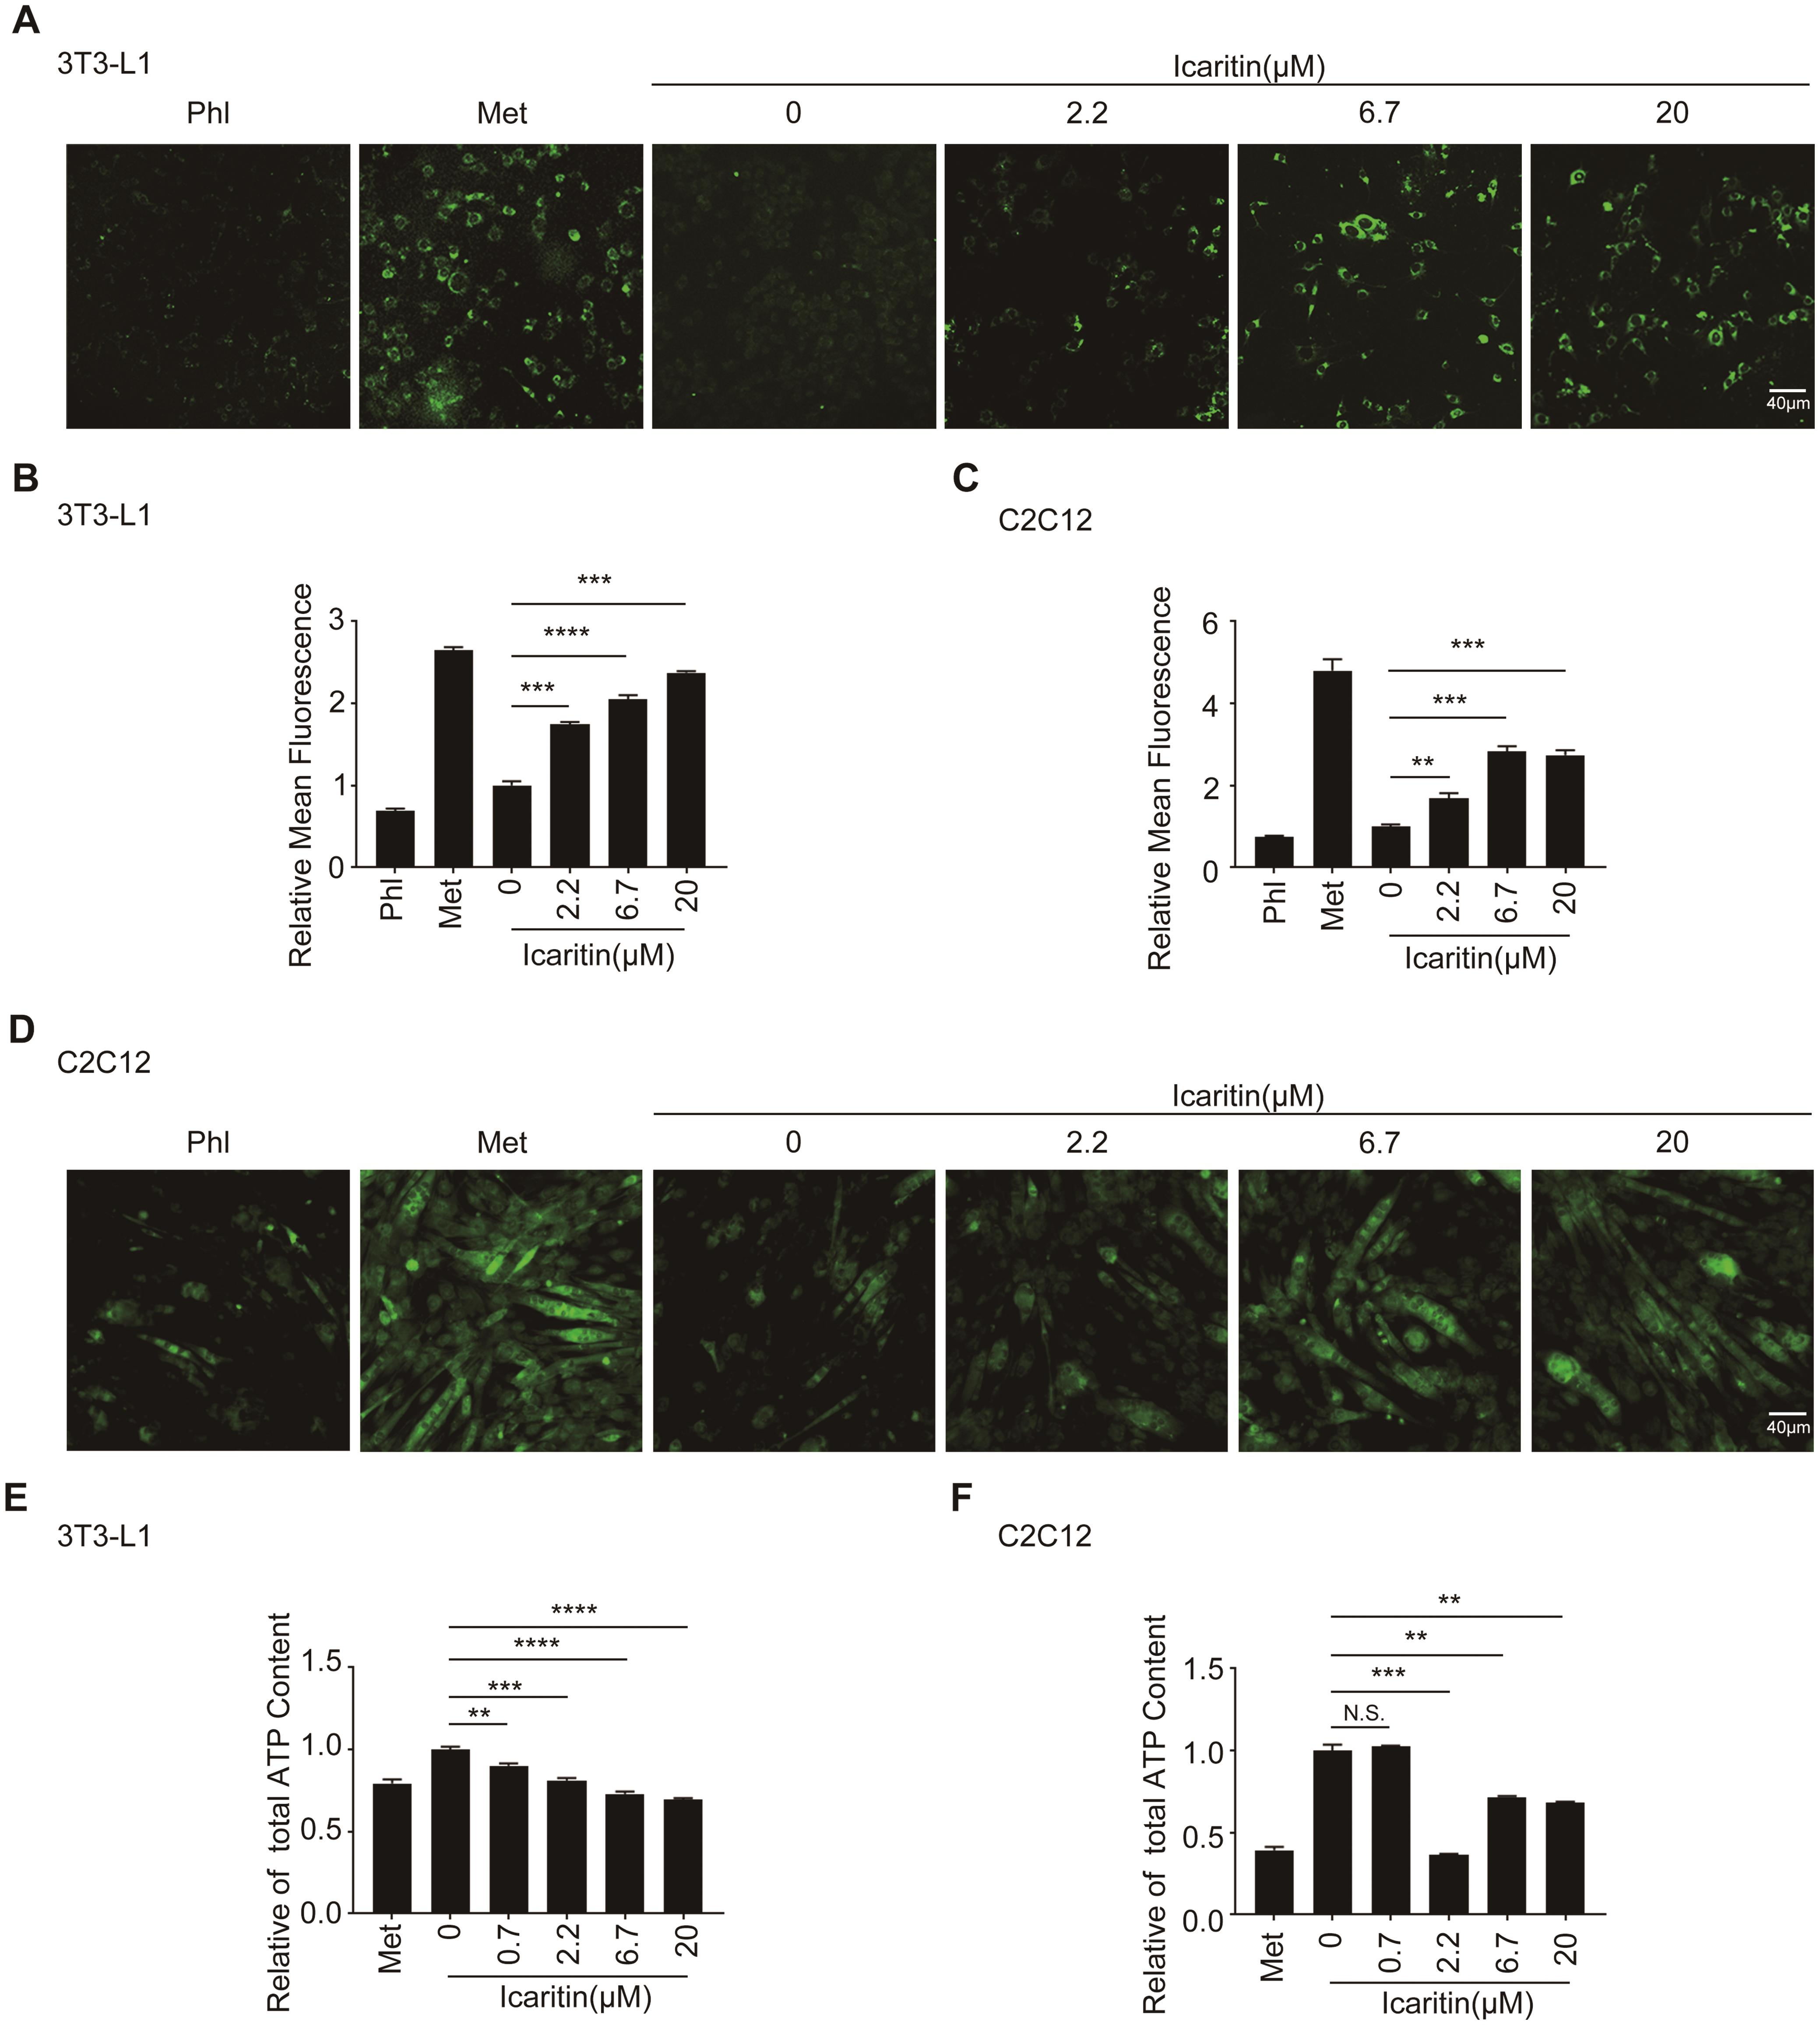 Icaritin increased the glucose uptake and decreased the ATP content in 3T3-L1 adipocytes and C2C12 myotubes.